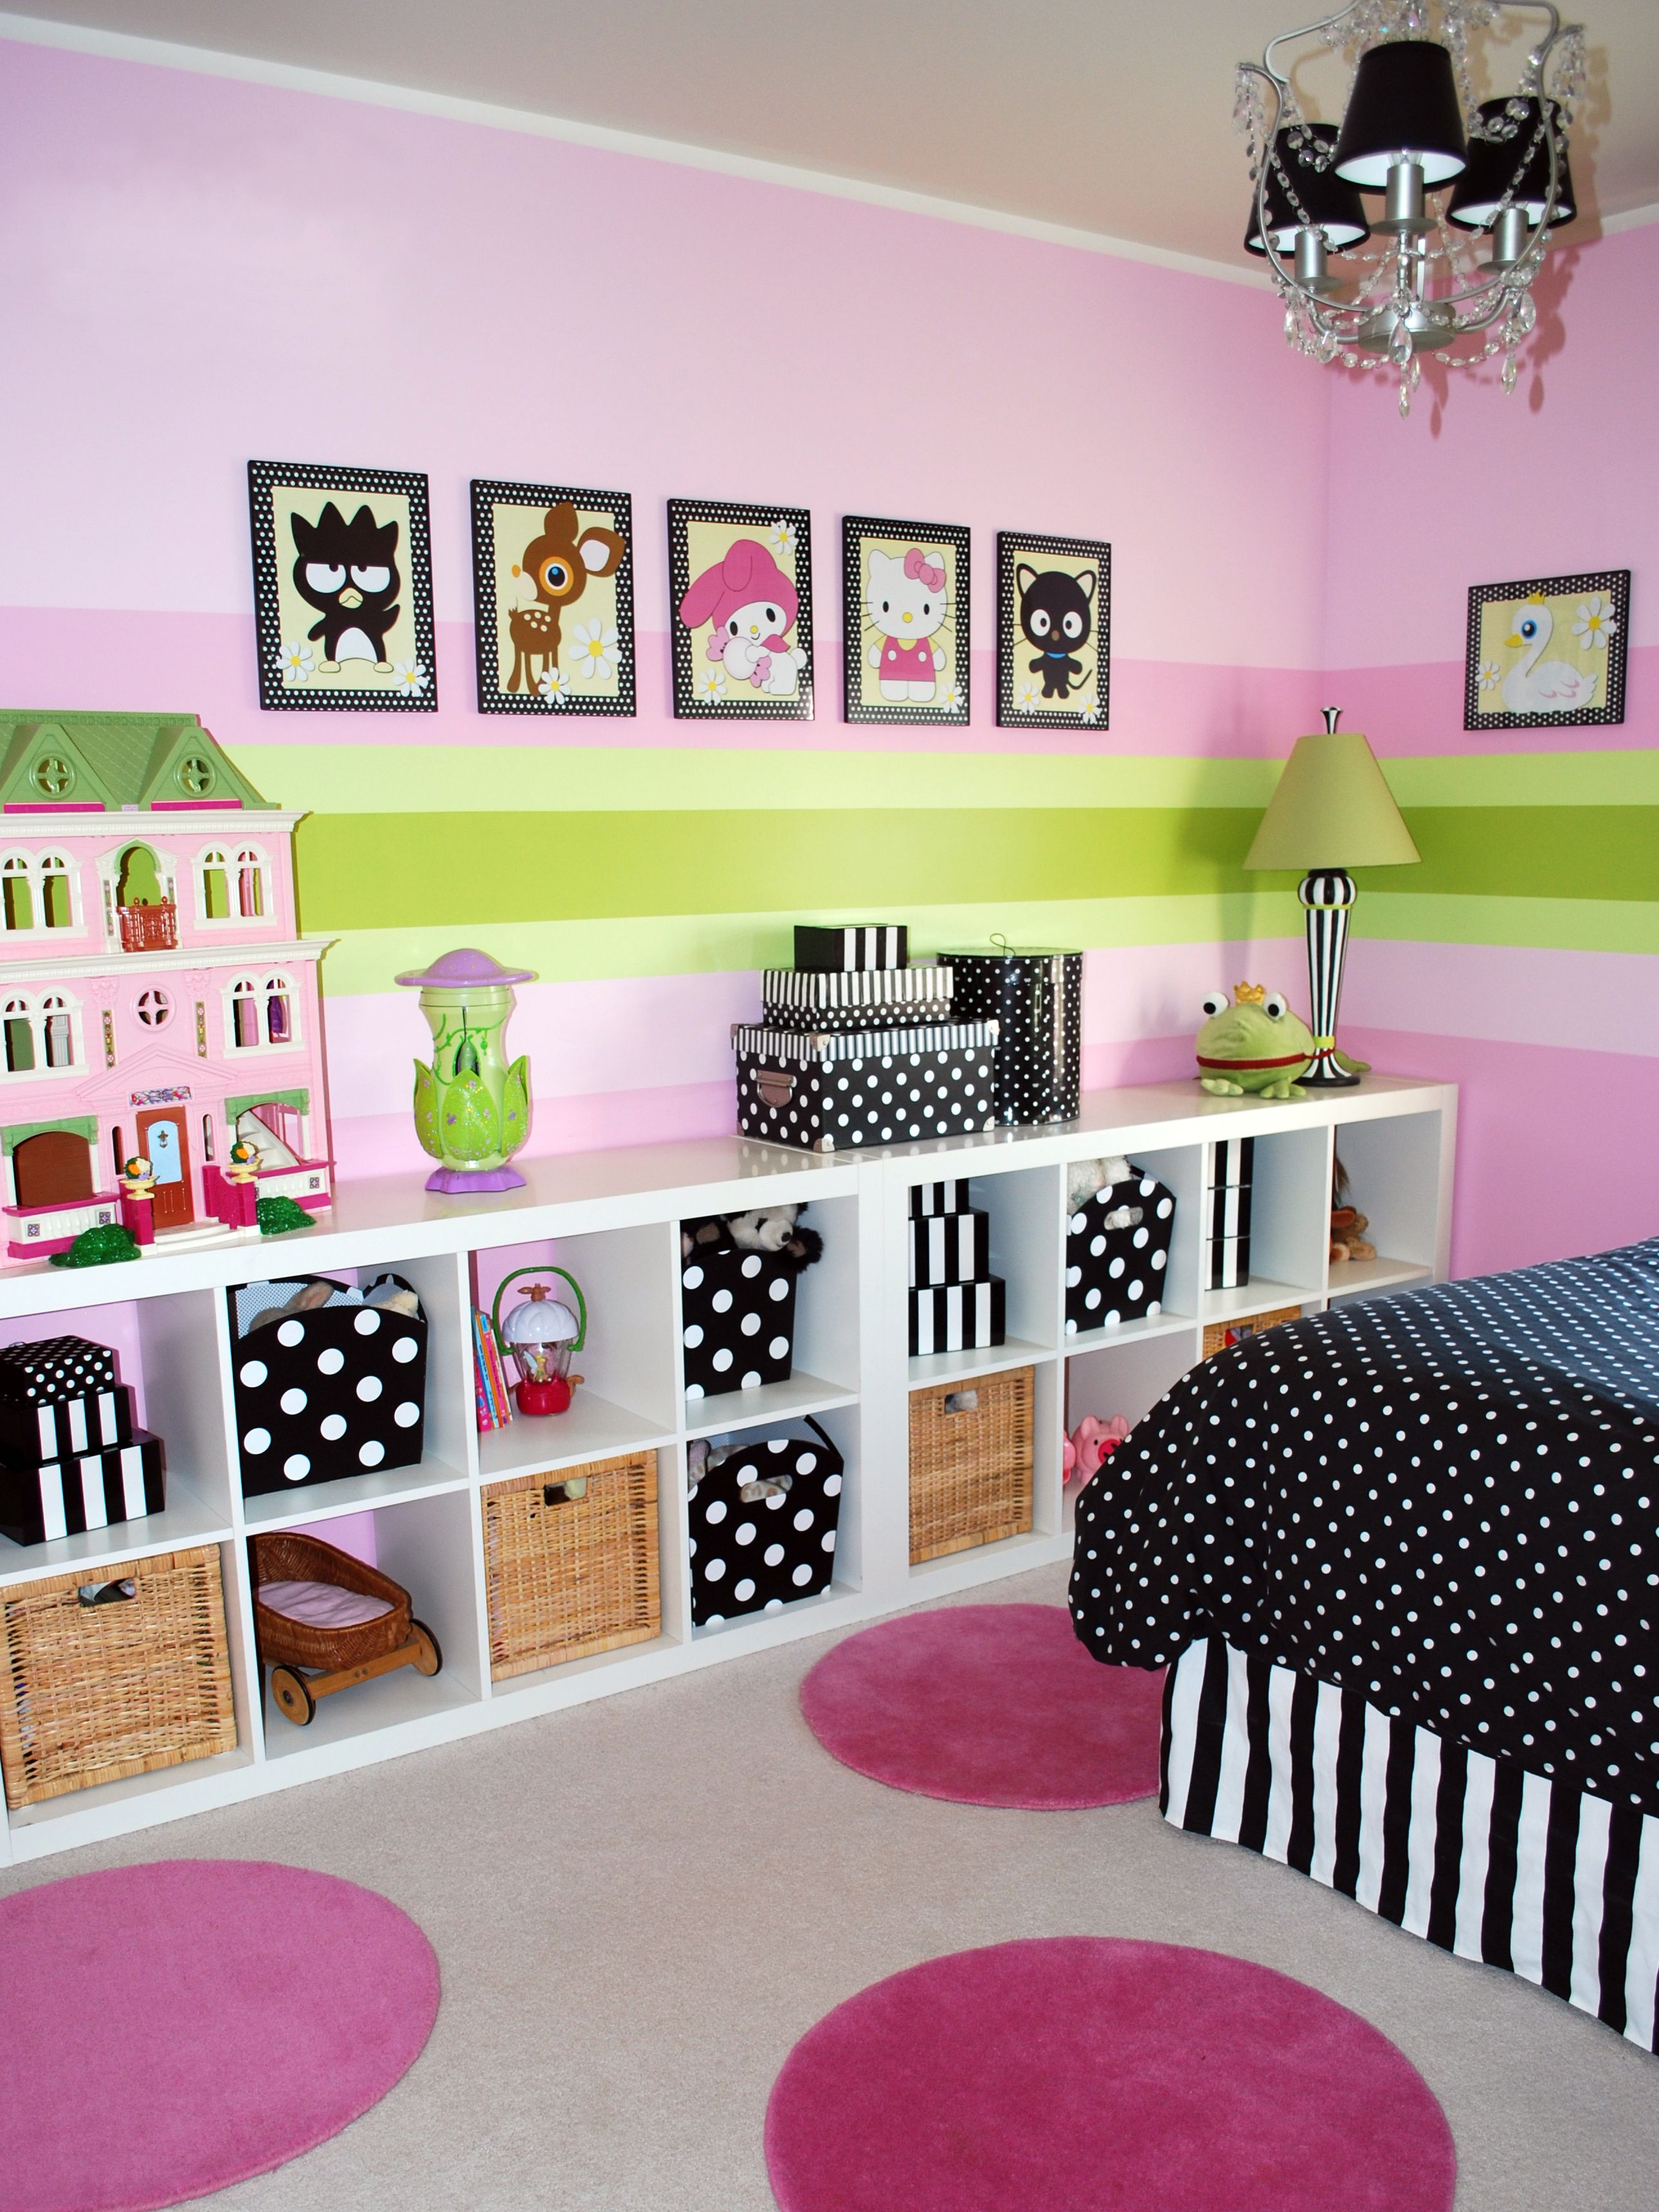 Exceptionnel Decorating Ideas For Kids Room. Polka Dot Rugs In Complimentary Colors  Throughout Bedroom Or Playroom.